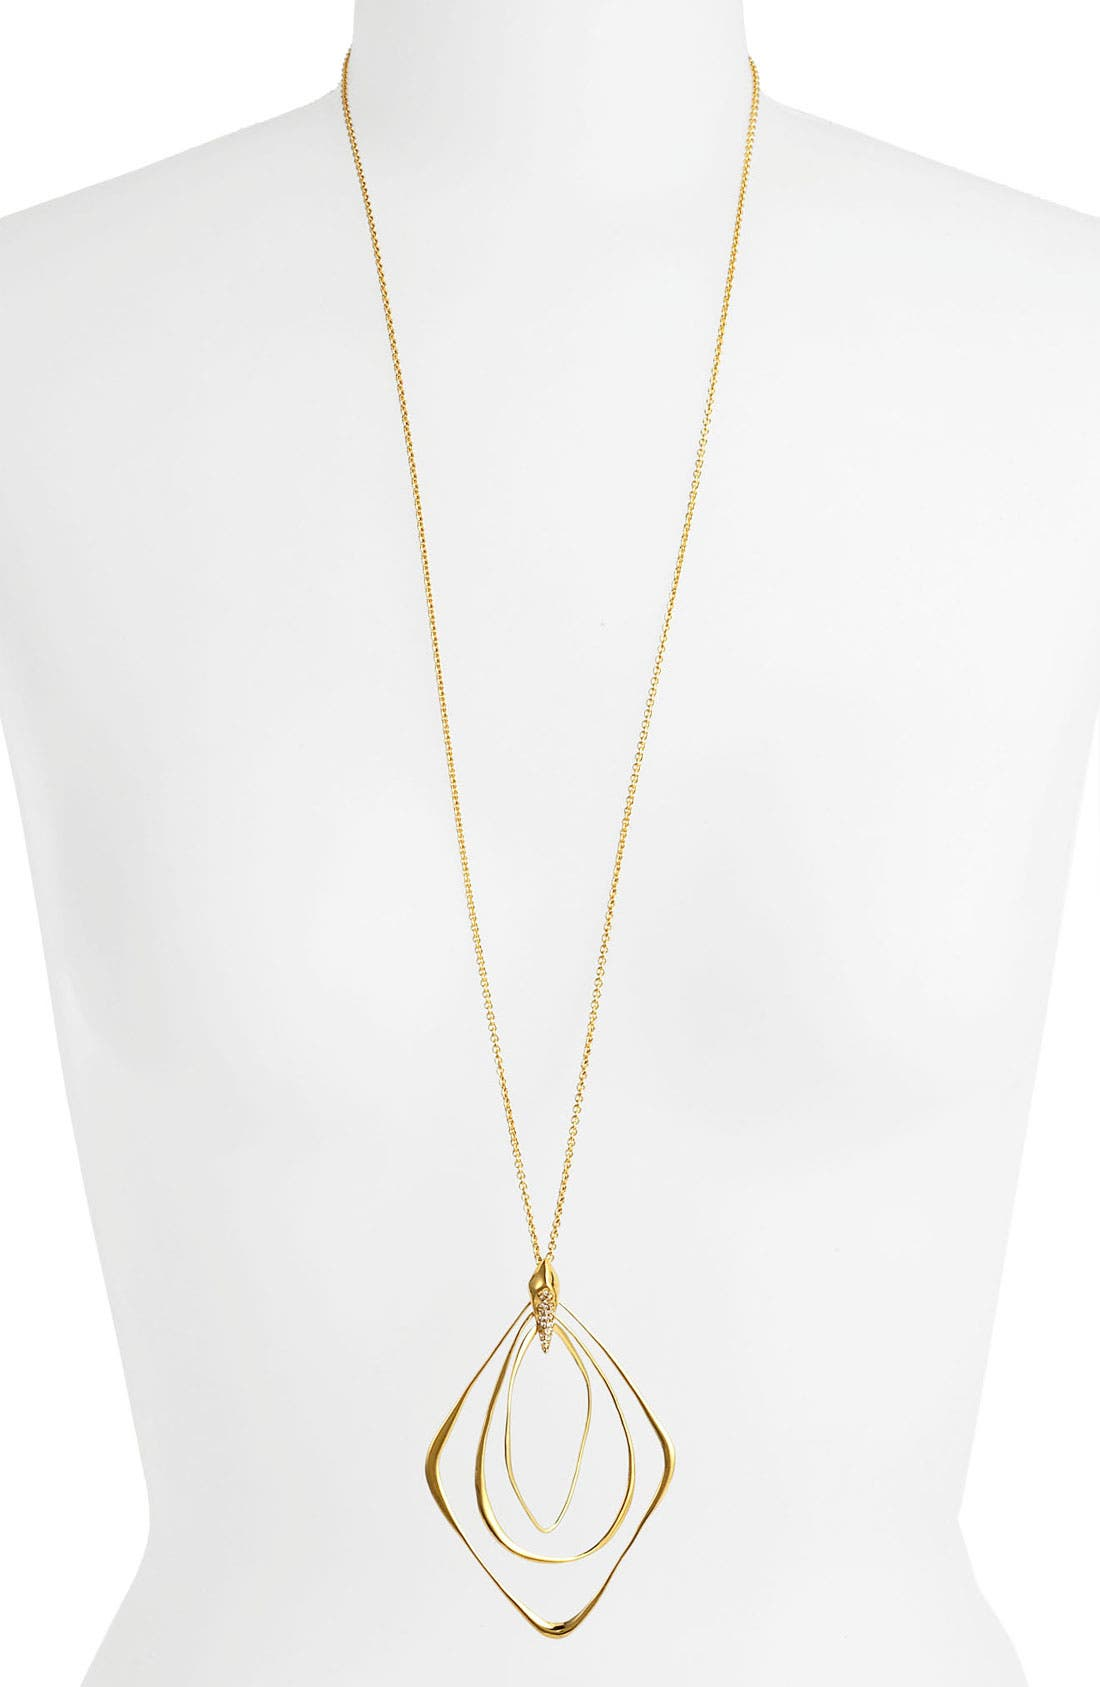 Main Image - Alexis Bittar 'Miss Havisham - Liquid Gold' Long Pendant Necklace